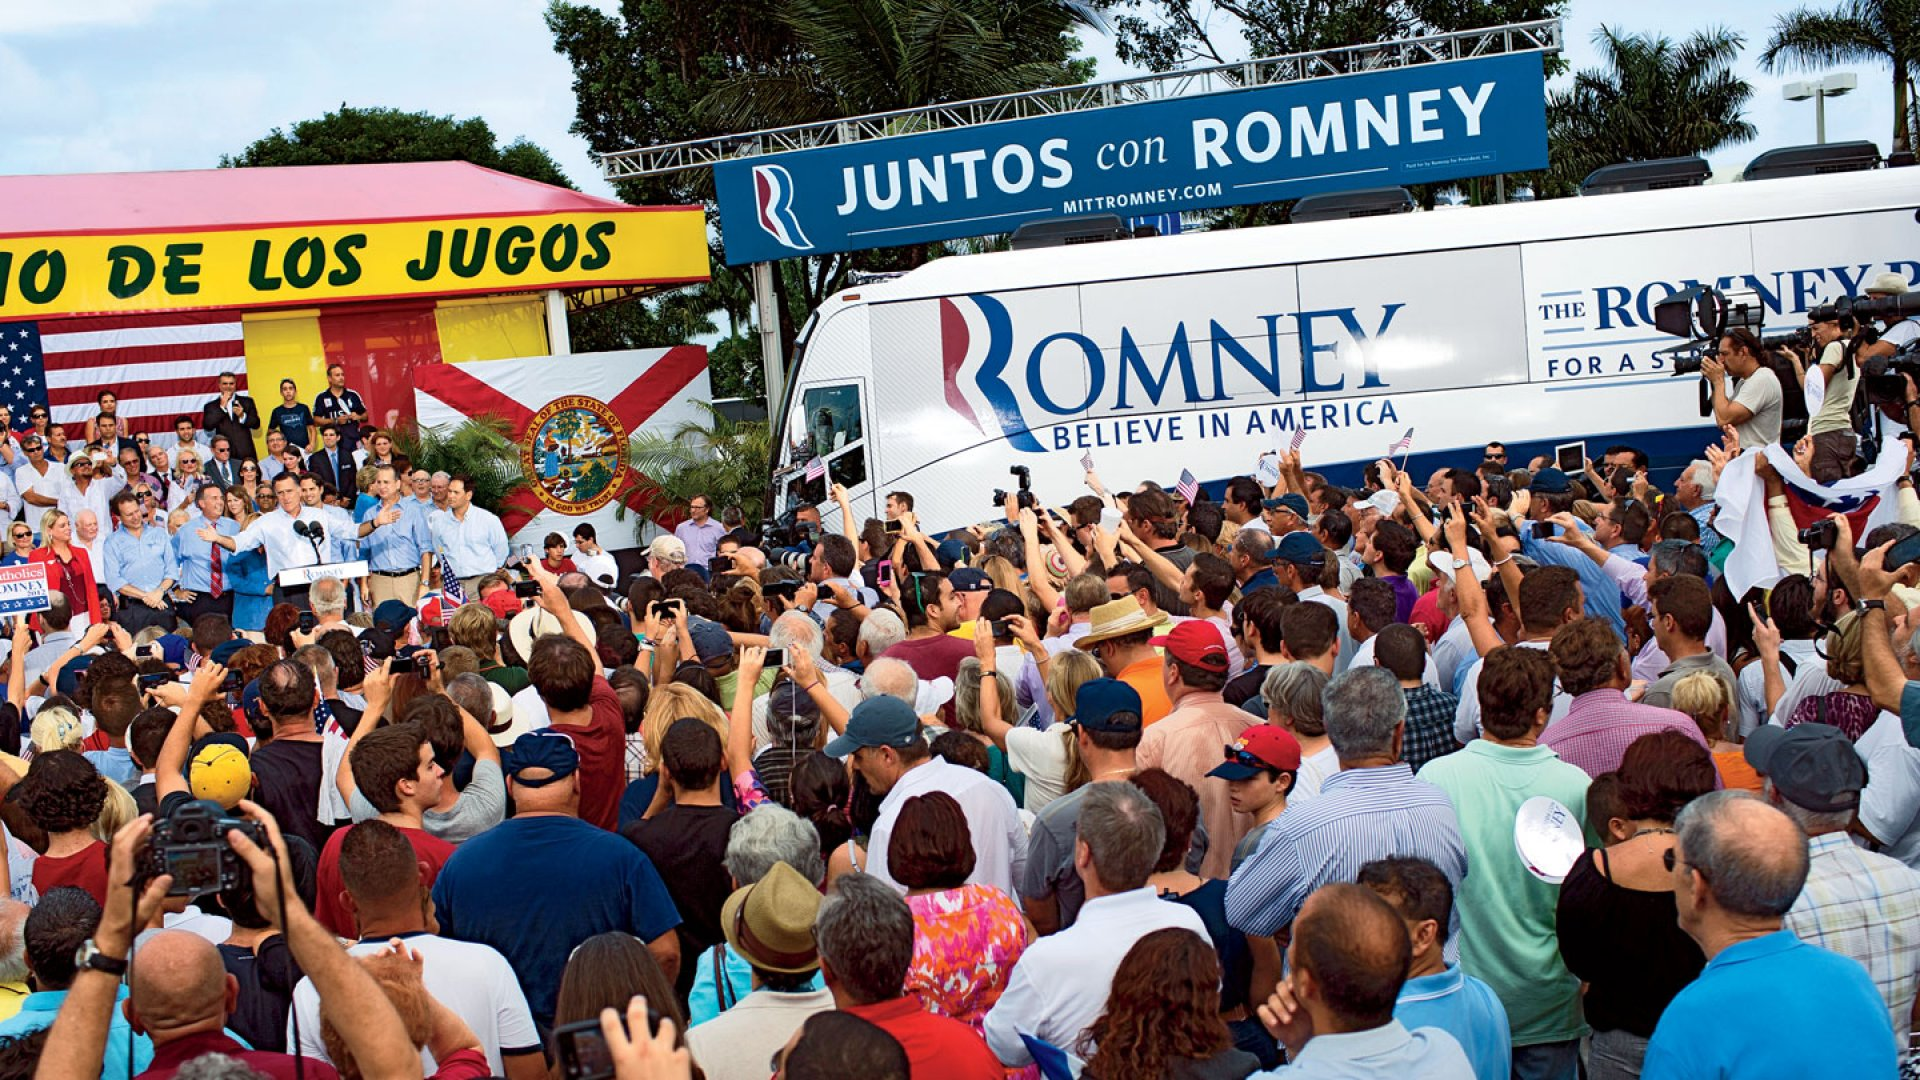 <b>Rallying the Troops</b> Mitt Romney at a campaign stop outside a Miami juice stand. The sign above the bus translates to <i>Together With Romney.</i>